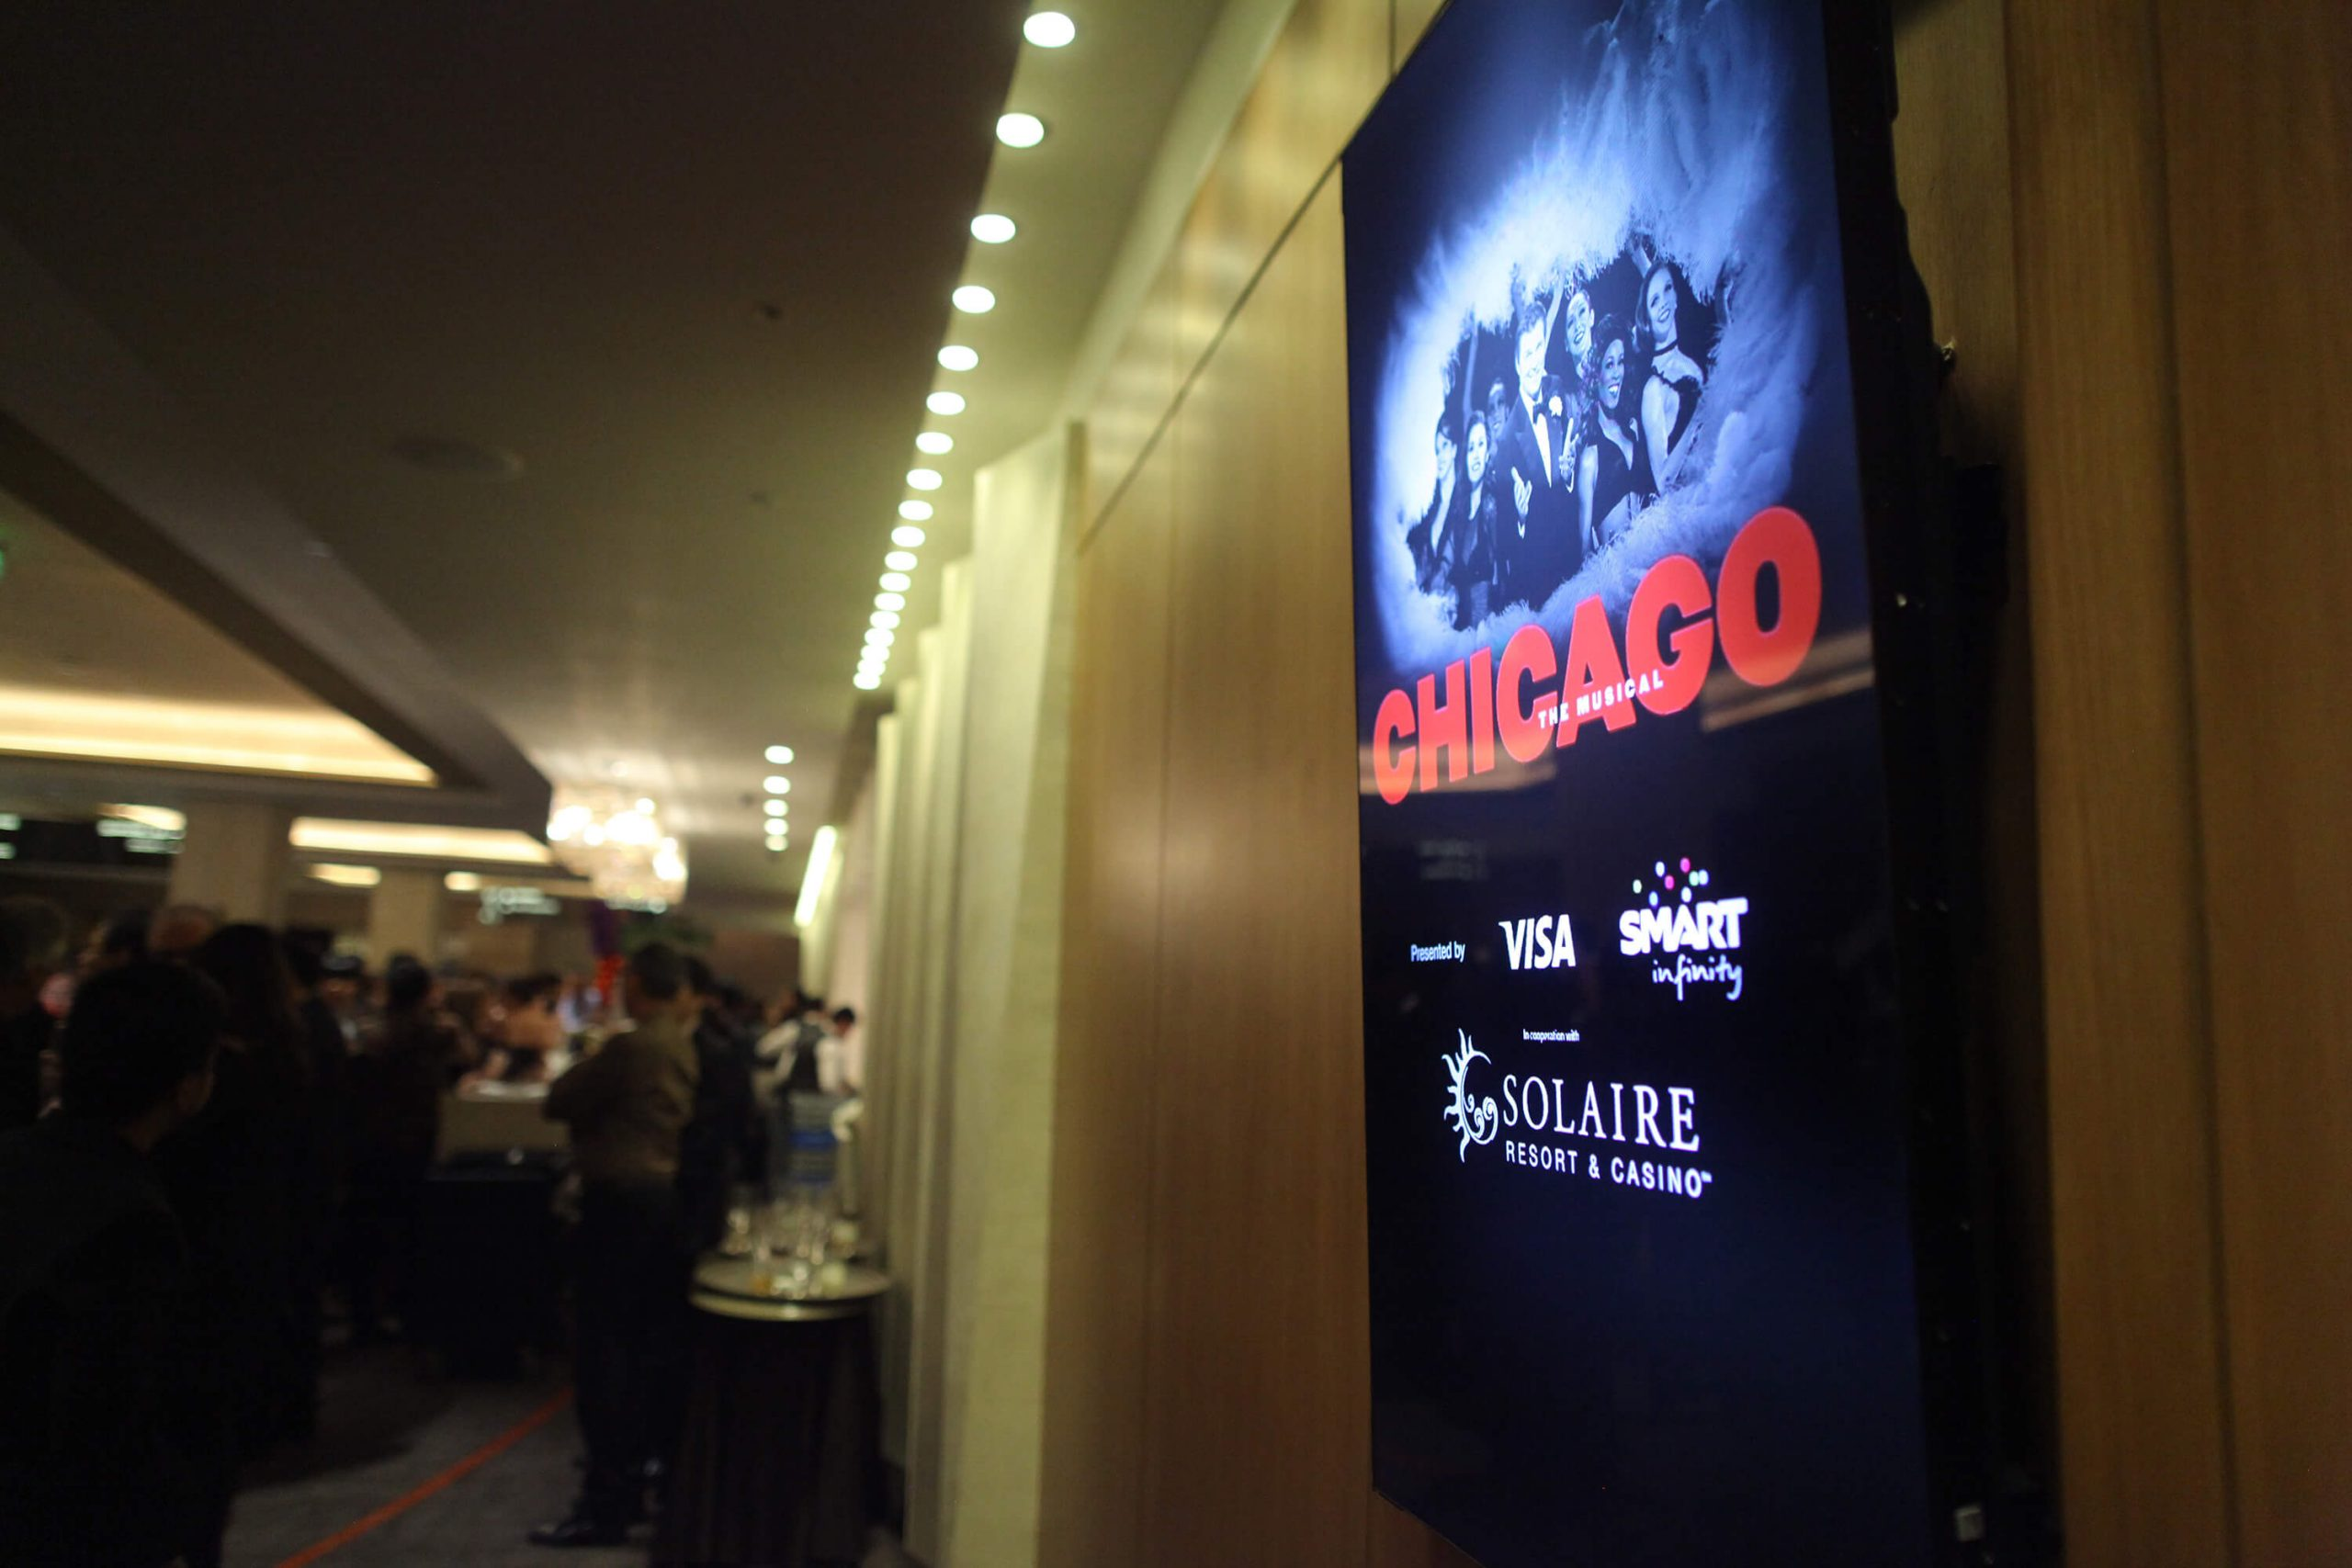 Chicago_Gallery_9